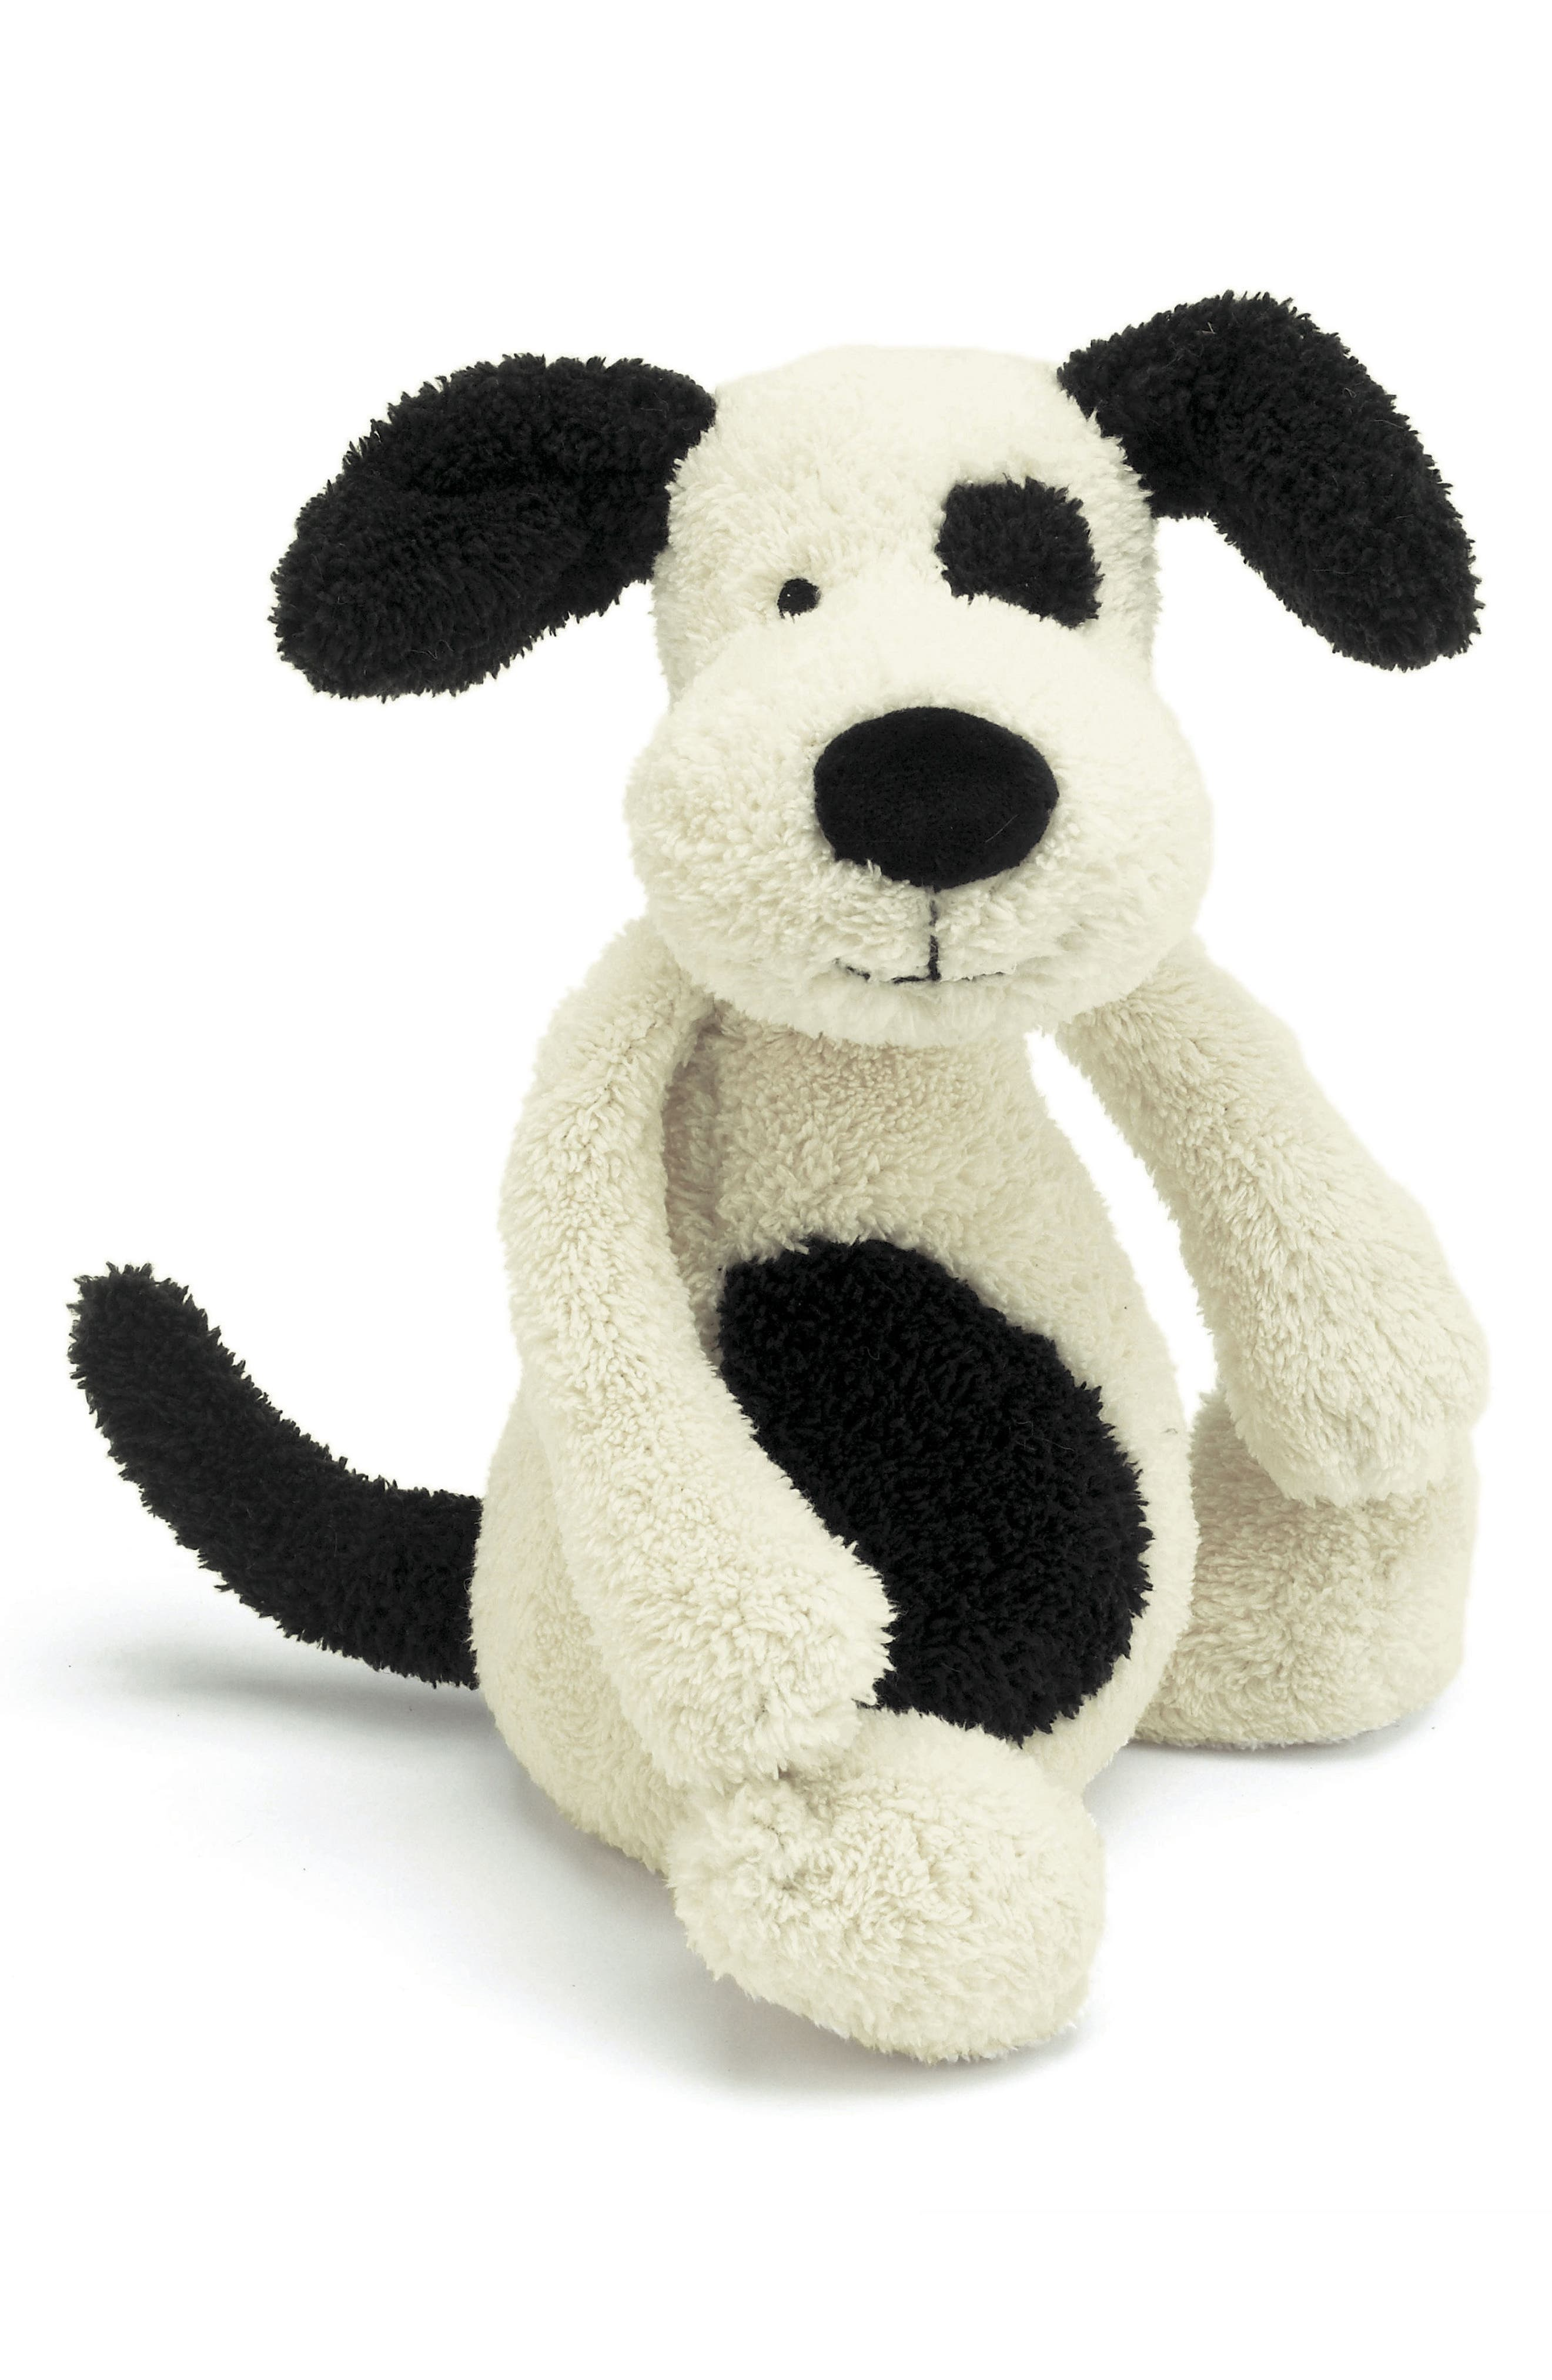 Main Image - Jellycat 'Large Bashful Puppy' Stuffed Animal